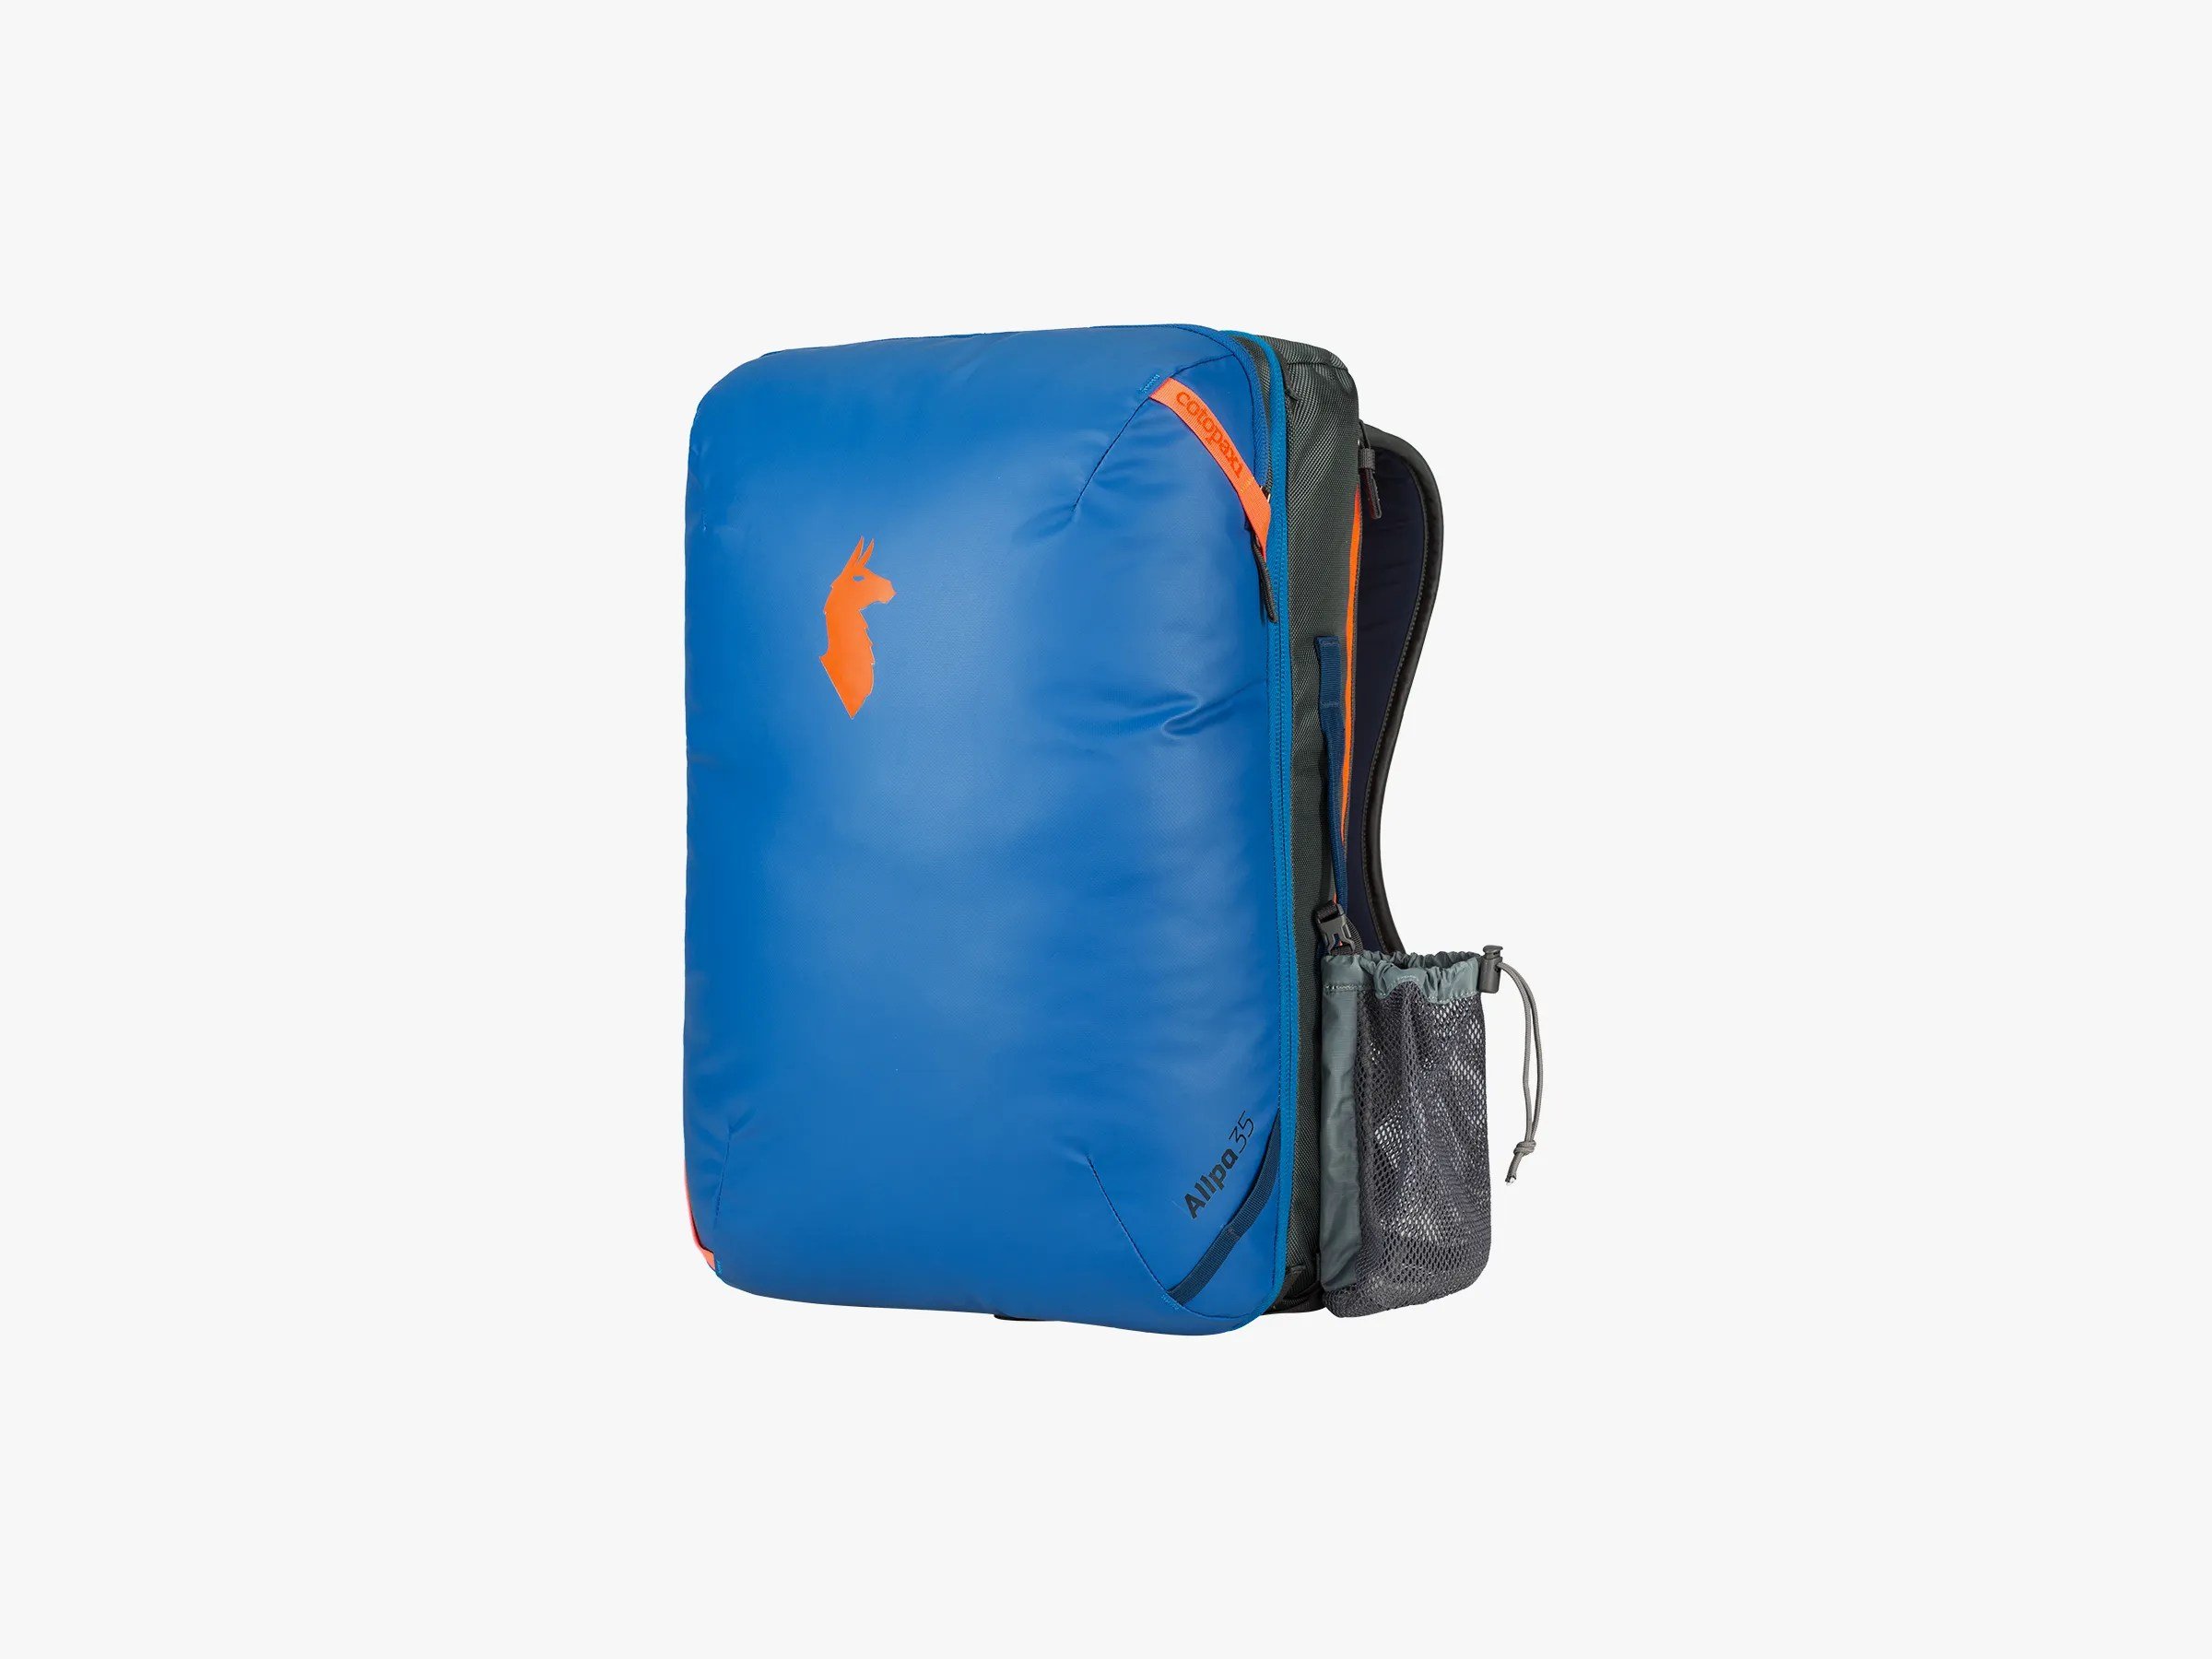 Waterproof Library Bags Australia Cotopaxi Allpa 35l Review Perfect For The Budding World Traveler